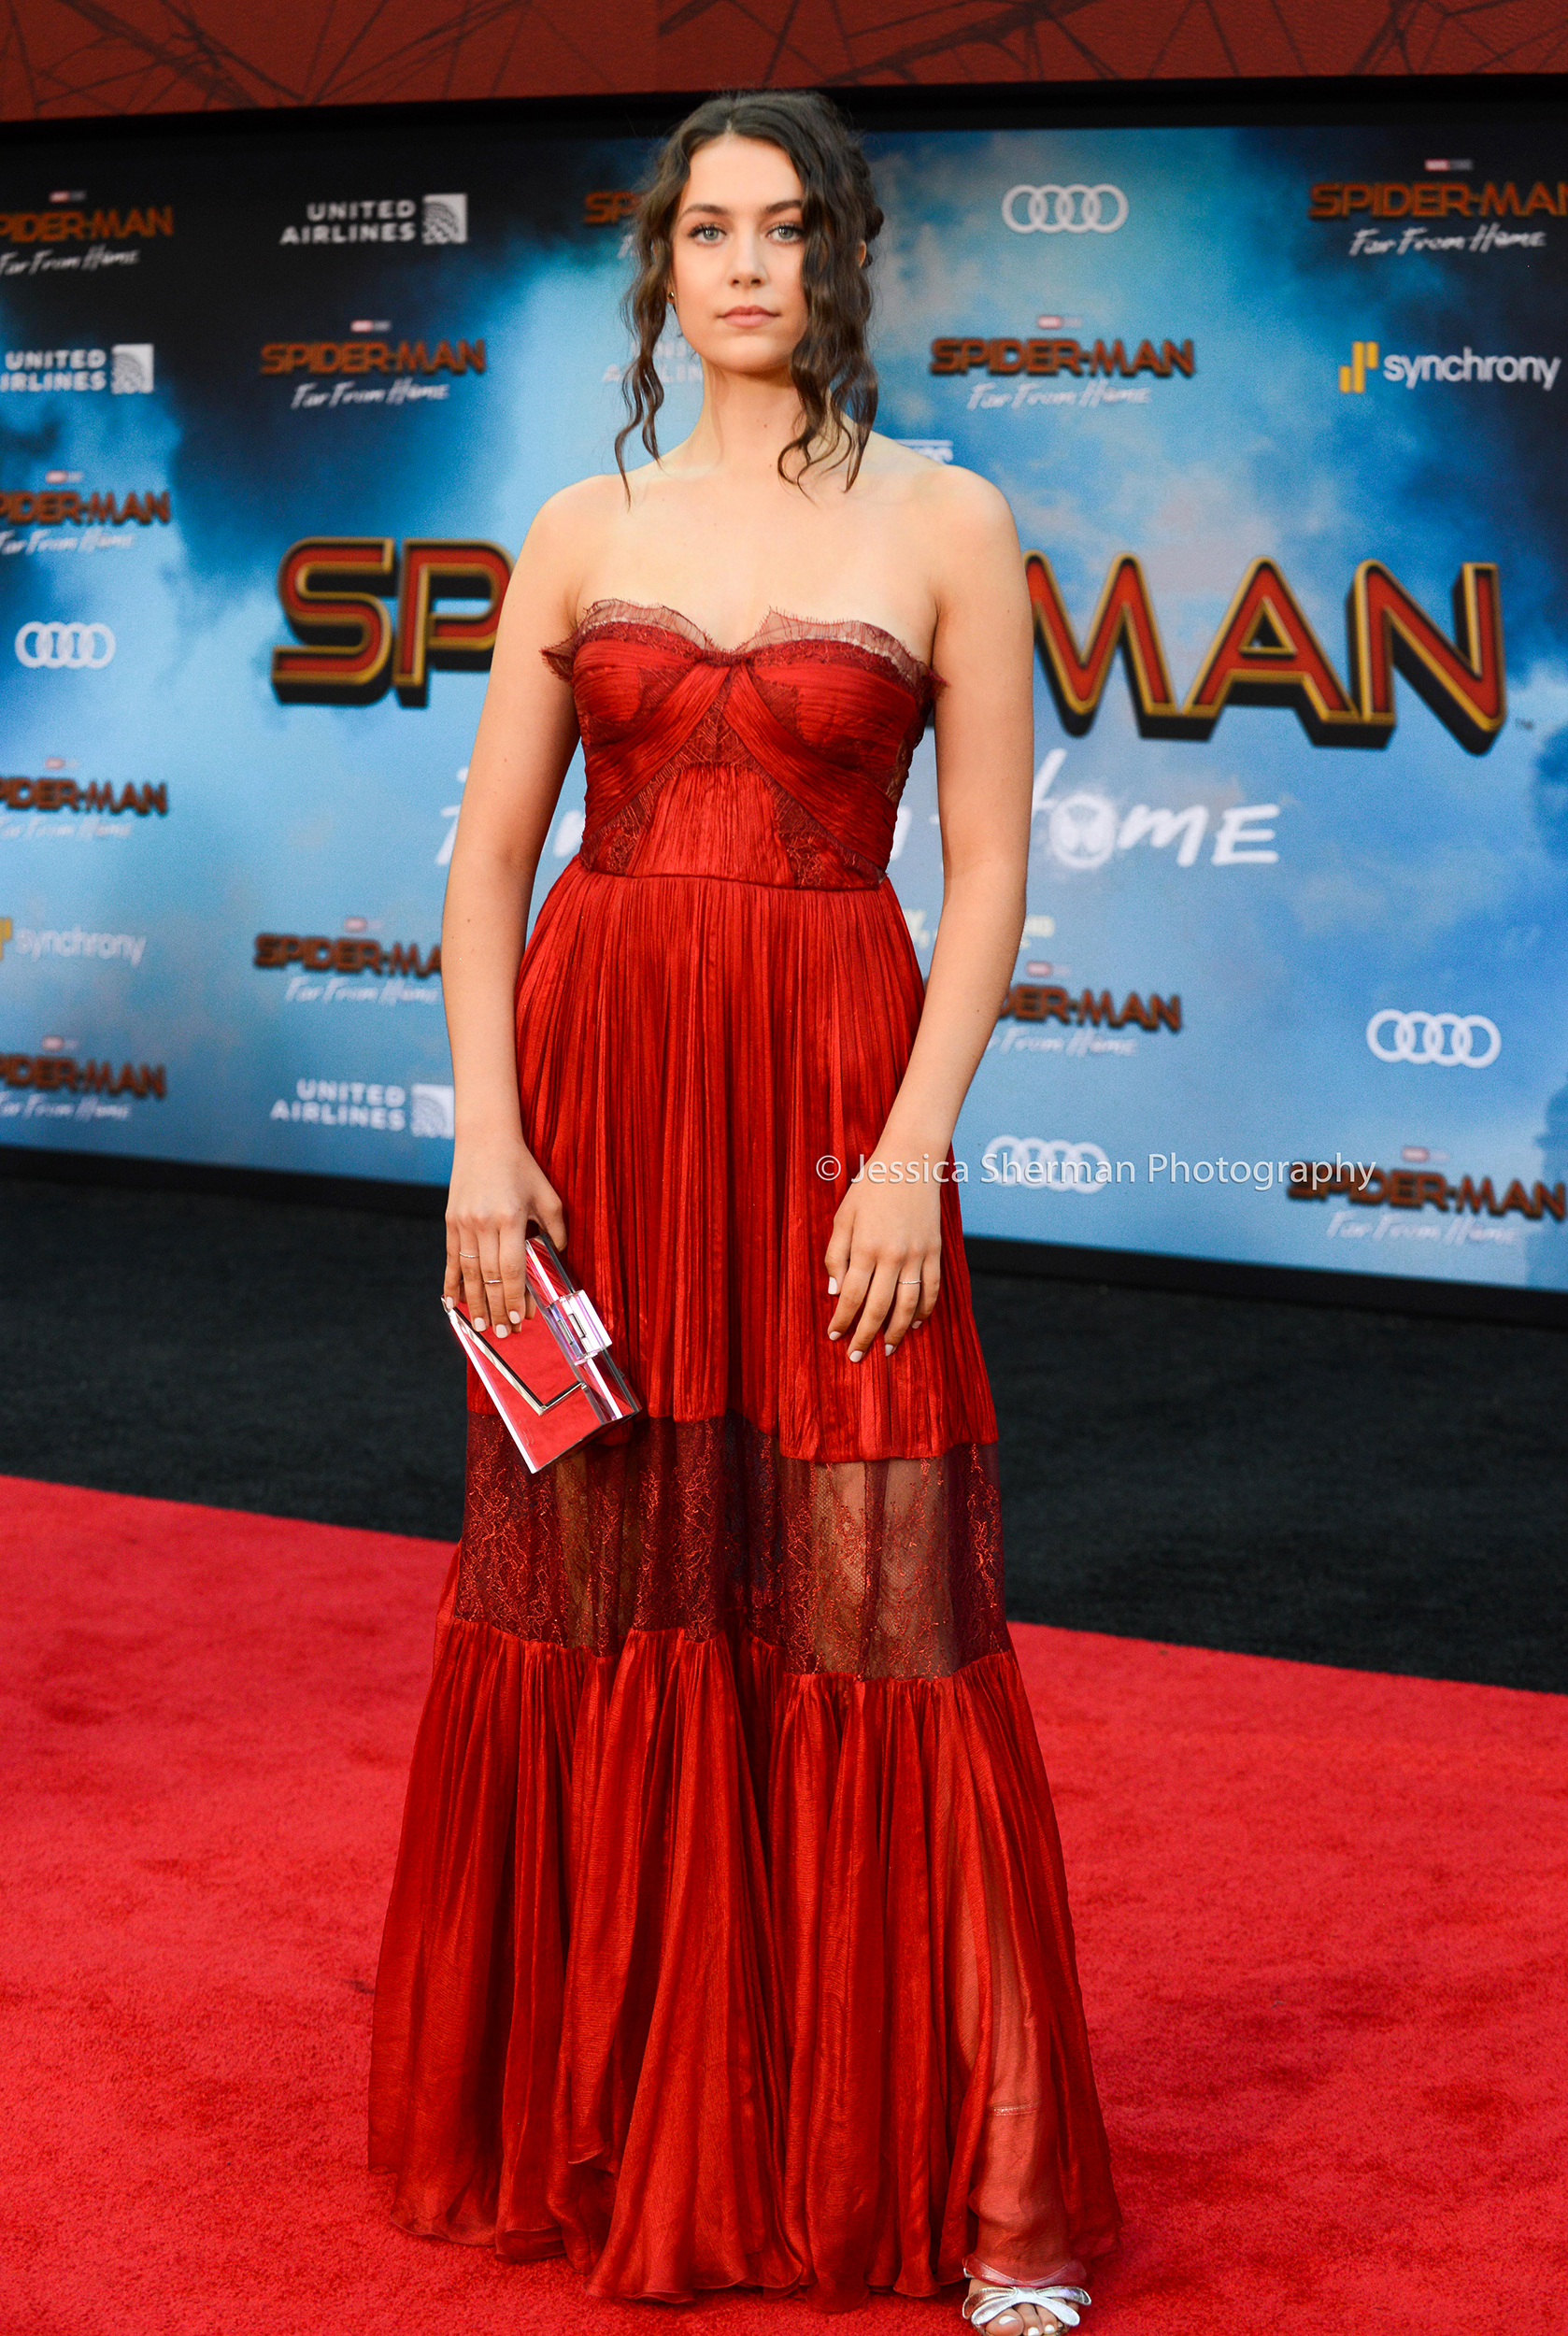 FFH-Red-Carpet-Jessica-Sherman-Site.jpg